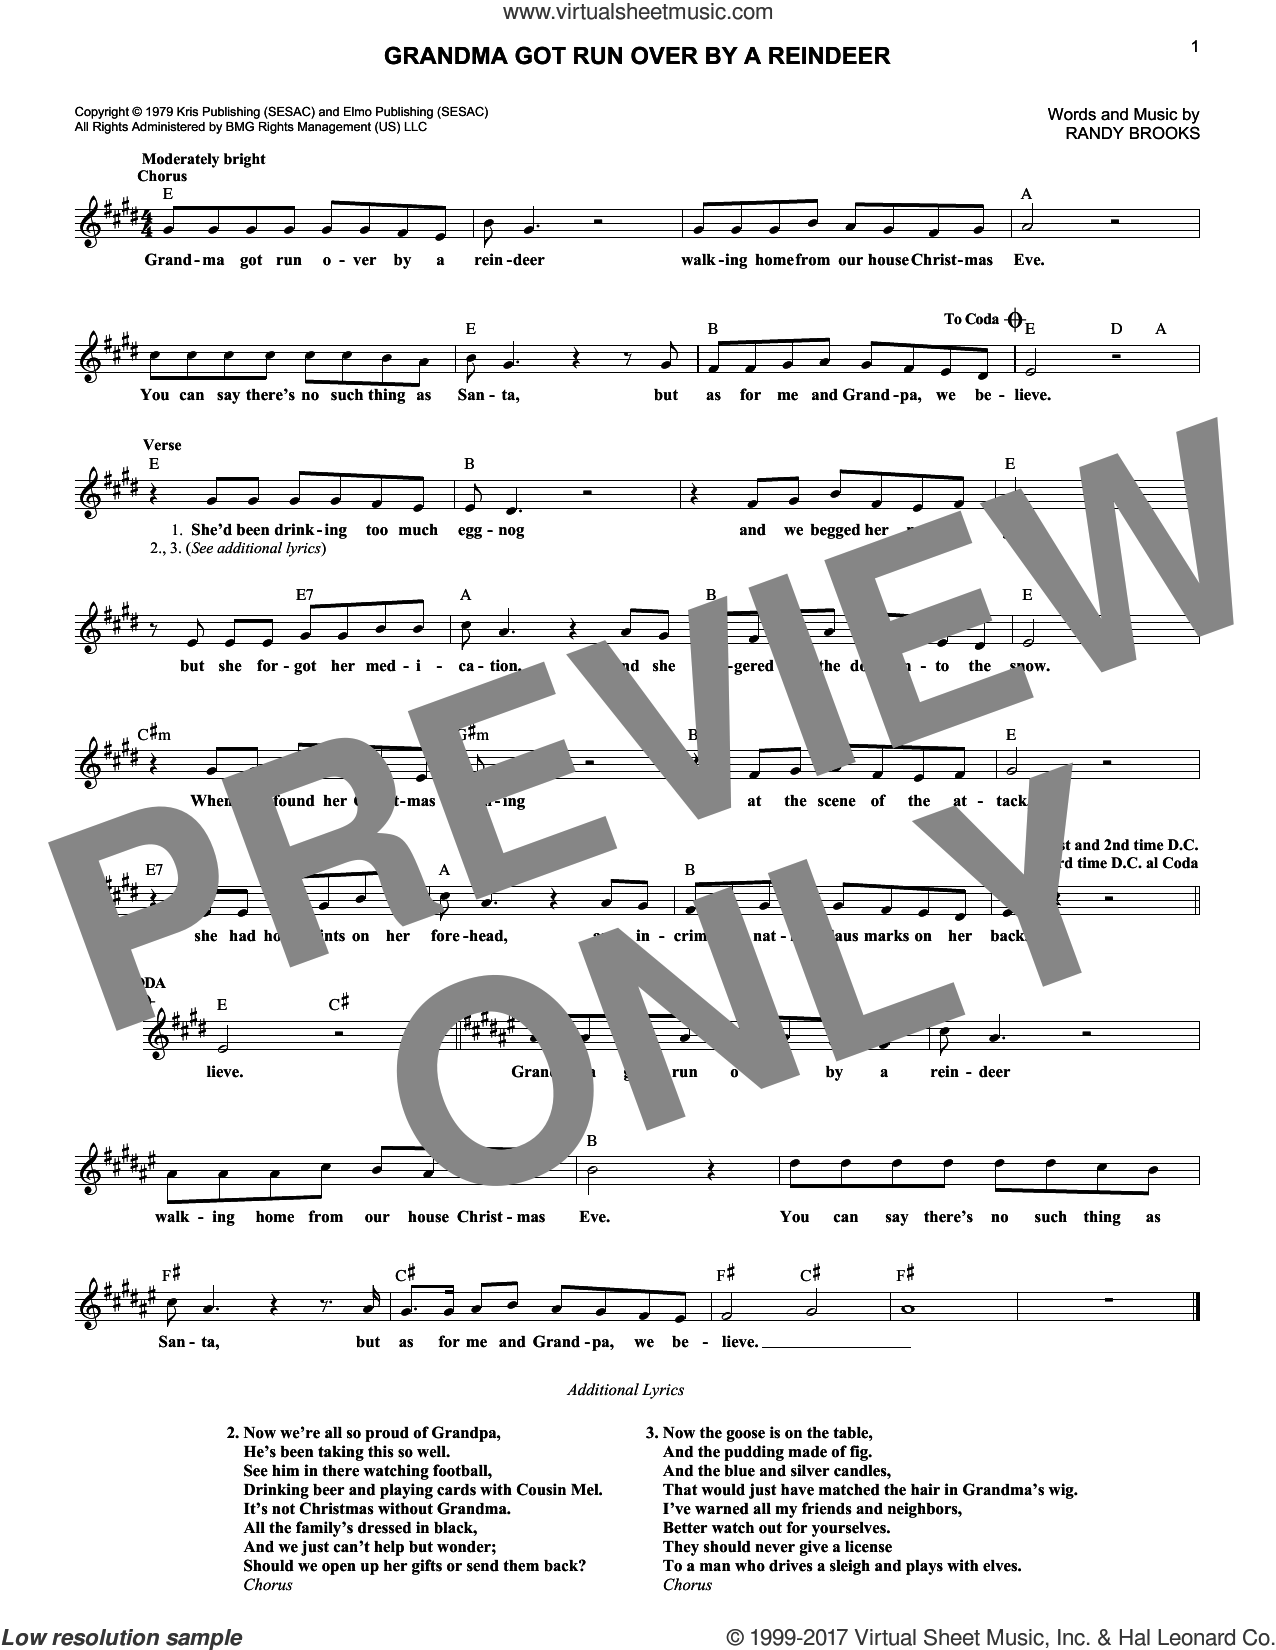 Grandma Got Run Over By A Reindeer sheet music for voice and other instruments (fake book) by Randy Brooks, intermediate skill level